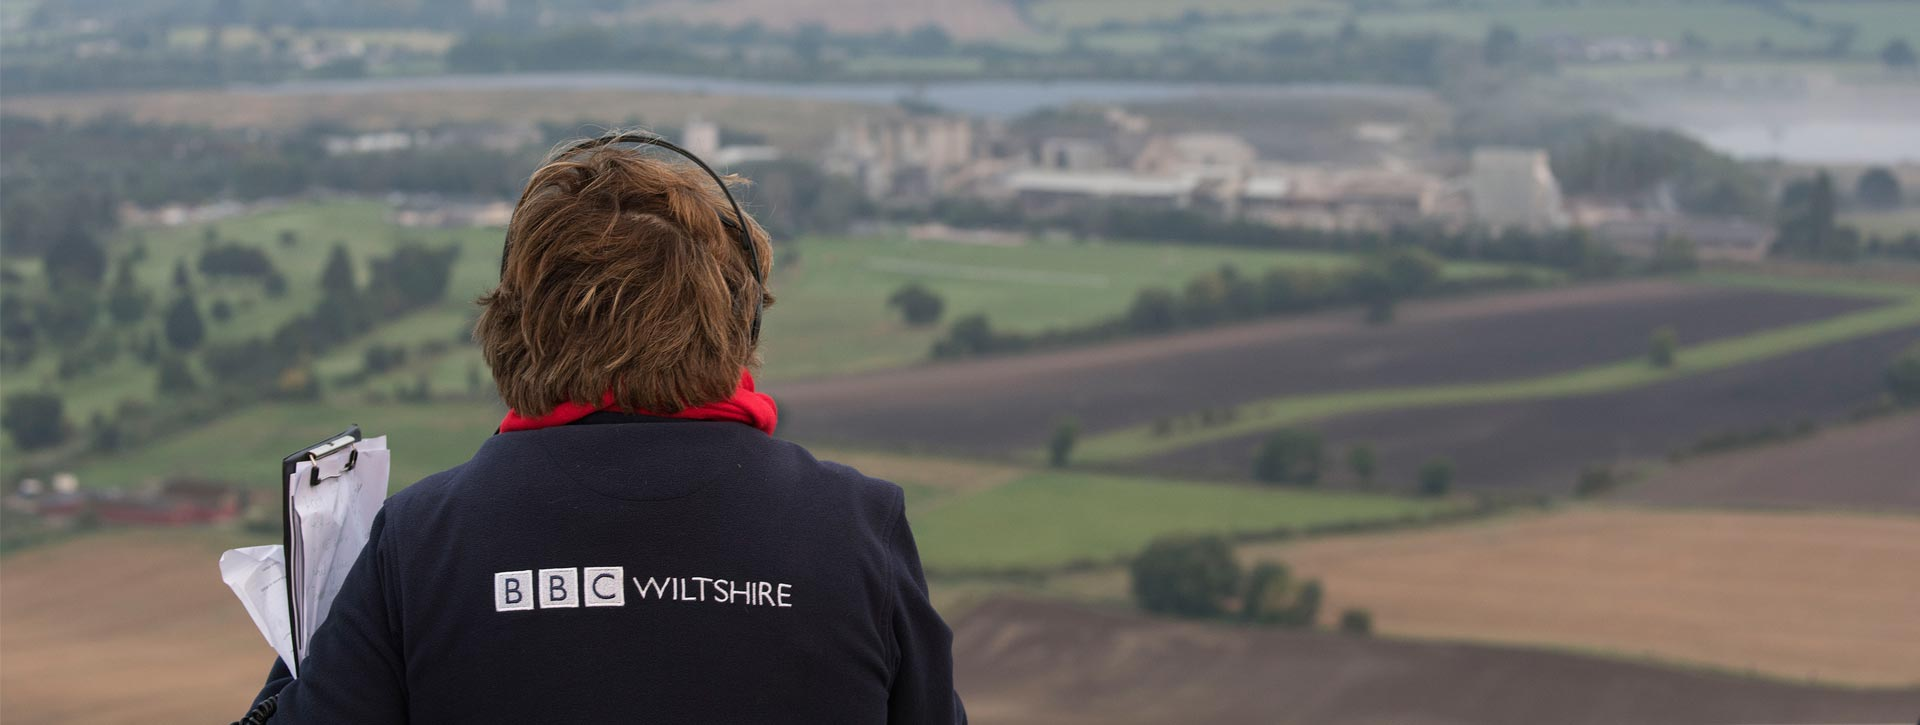 overlooking cement works image - corporate photographer